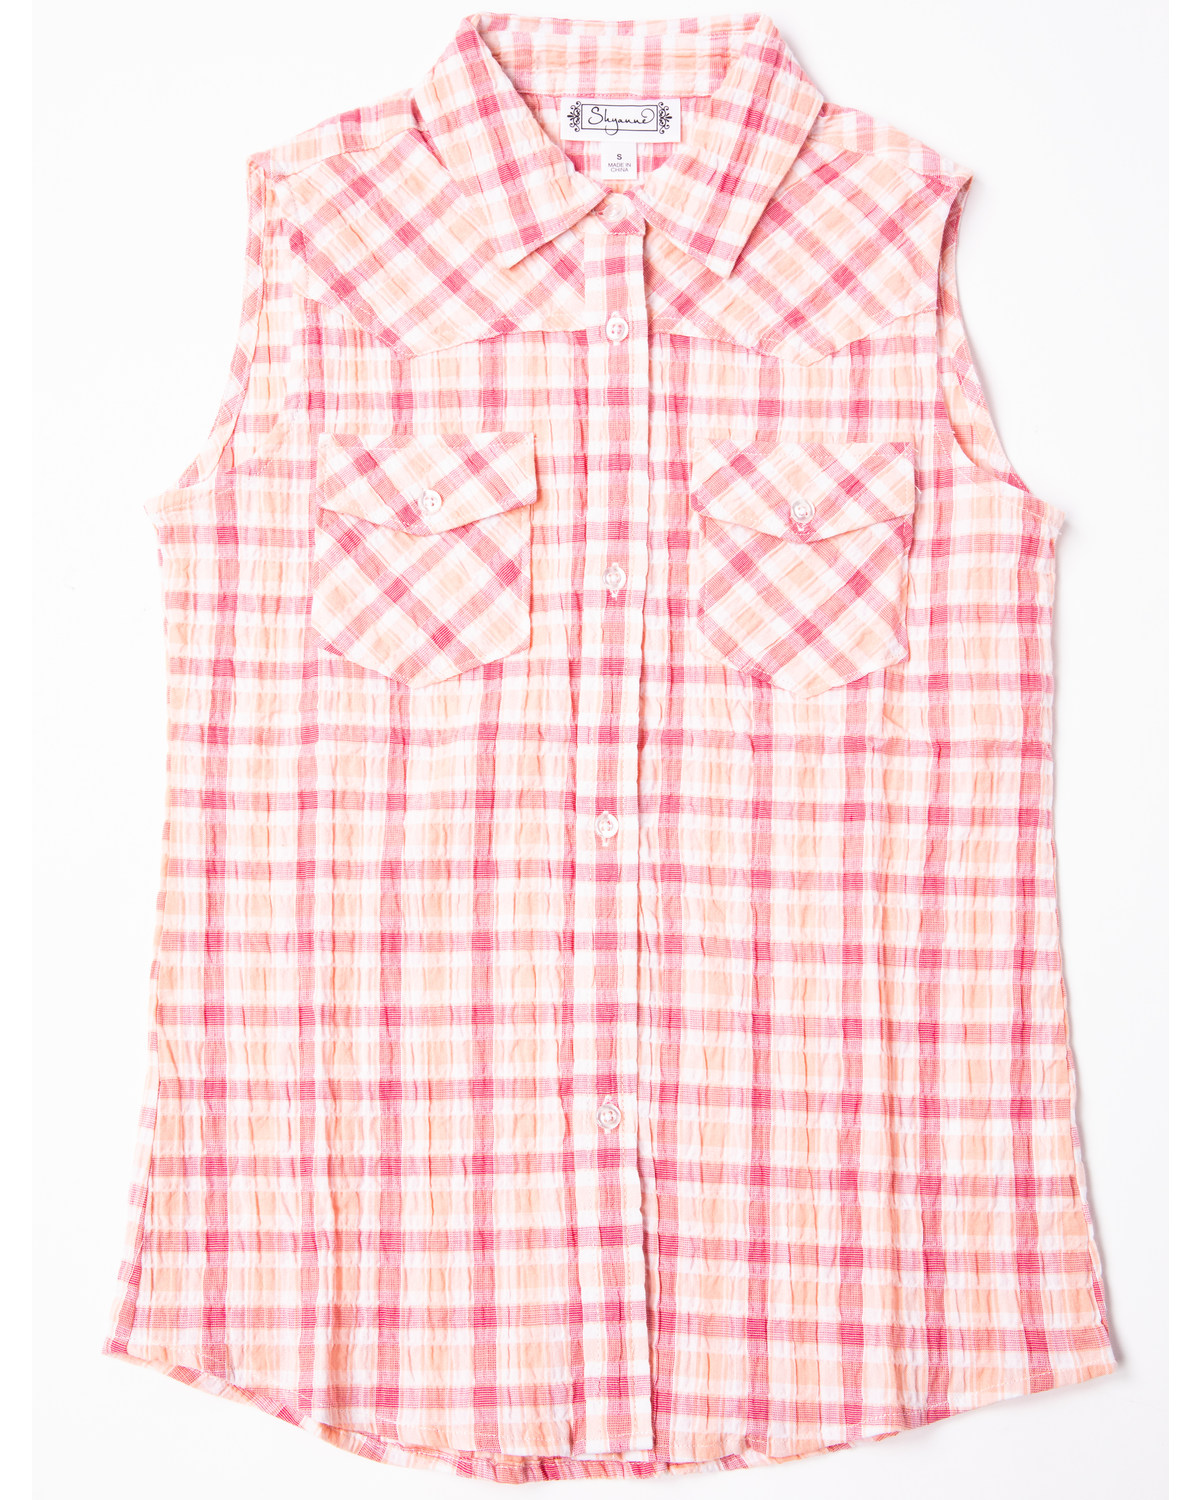 41bcb22e1 Zoomed Image Shyanne Girls' Check Plaid Sleeveless Western Top, Pink, ...